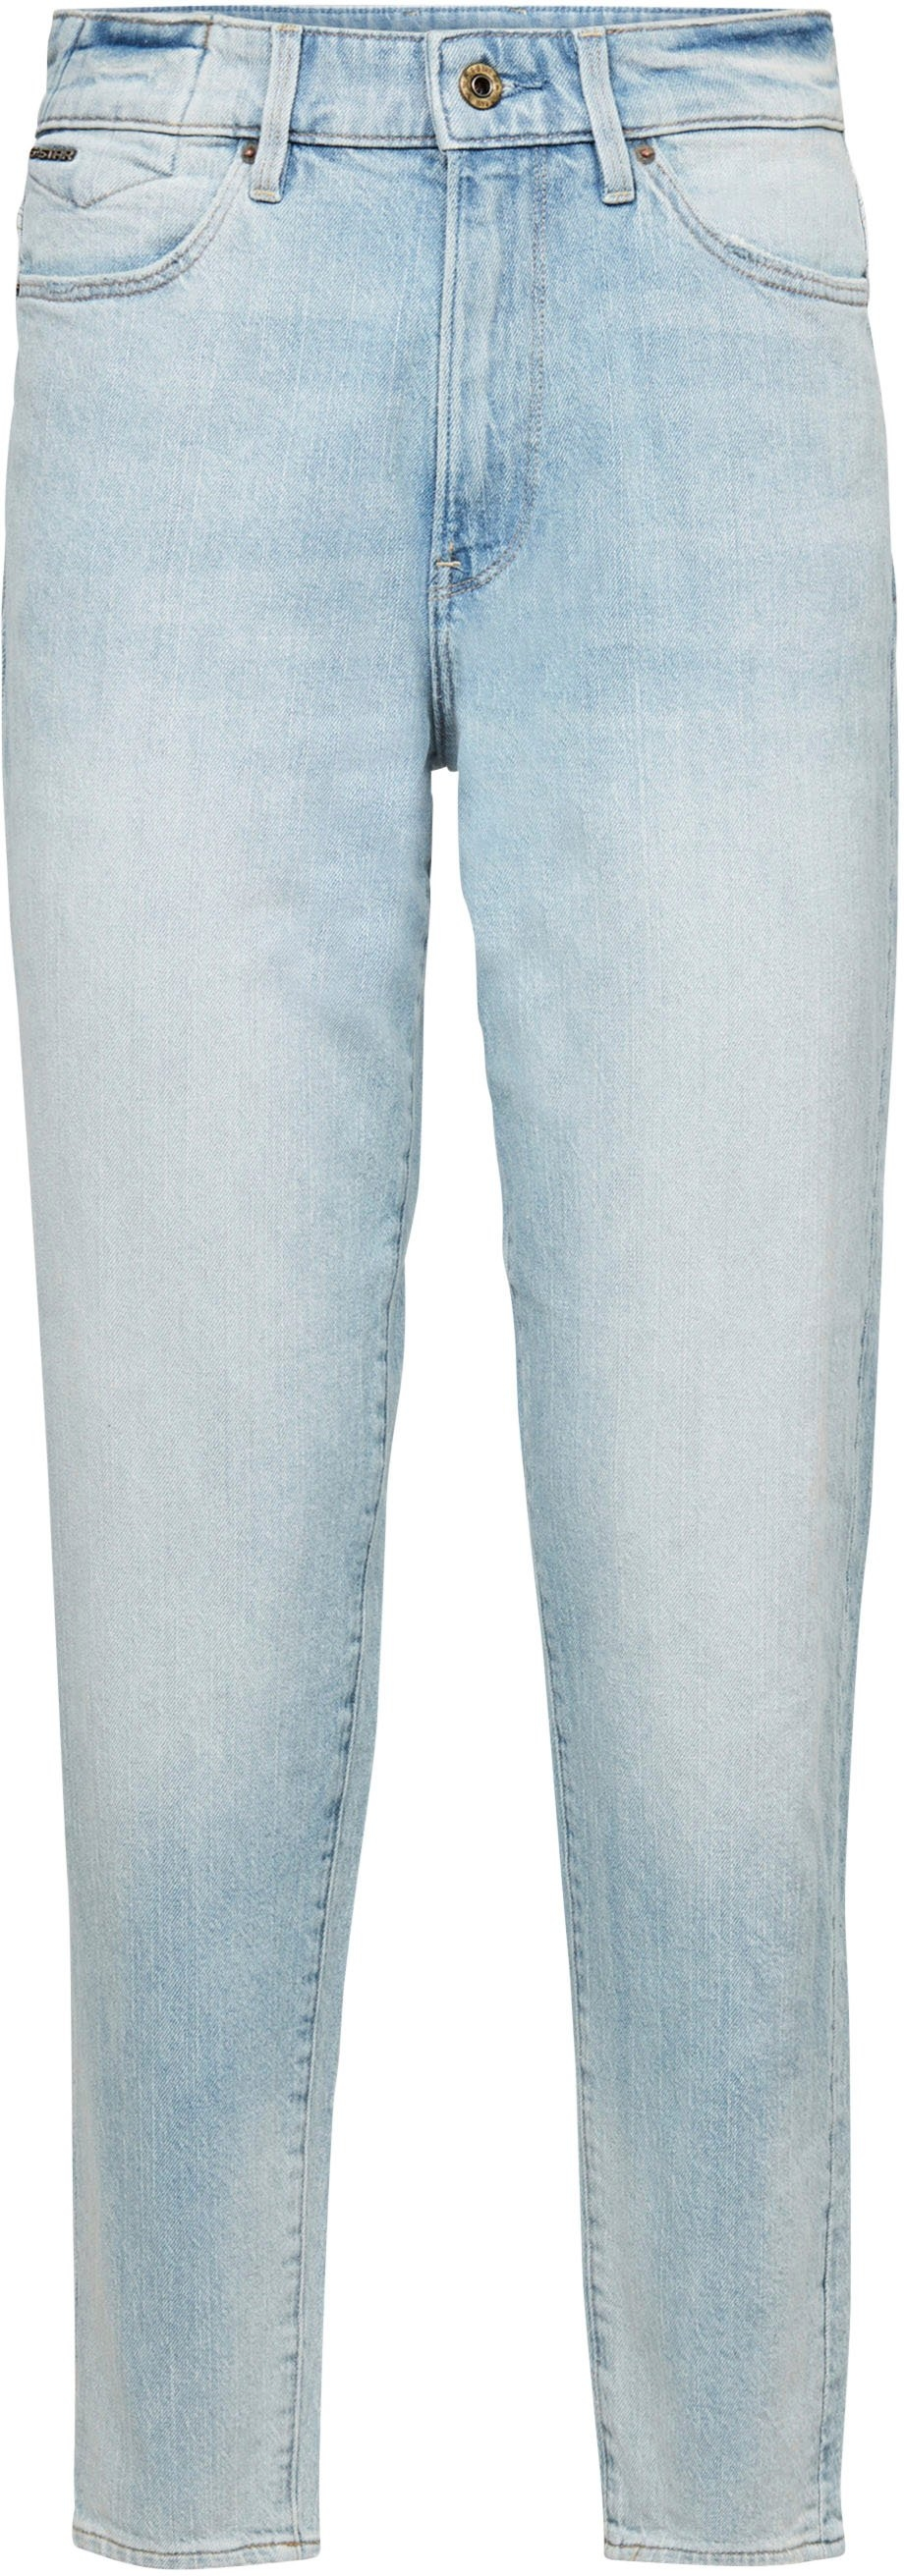 G-Star Raw straight jeans »Janeh Ultra High Mom Ankle Jeans« veilig op otto.nl kopen